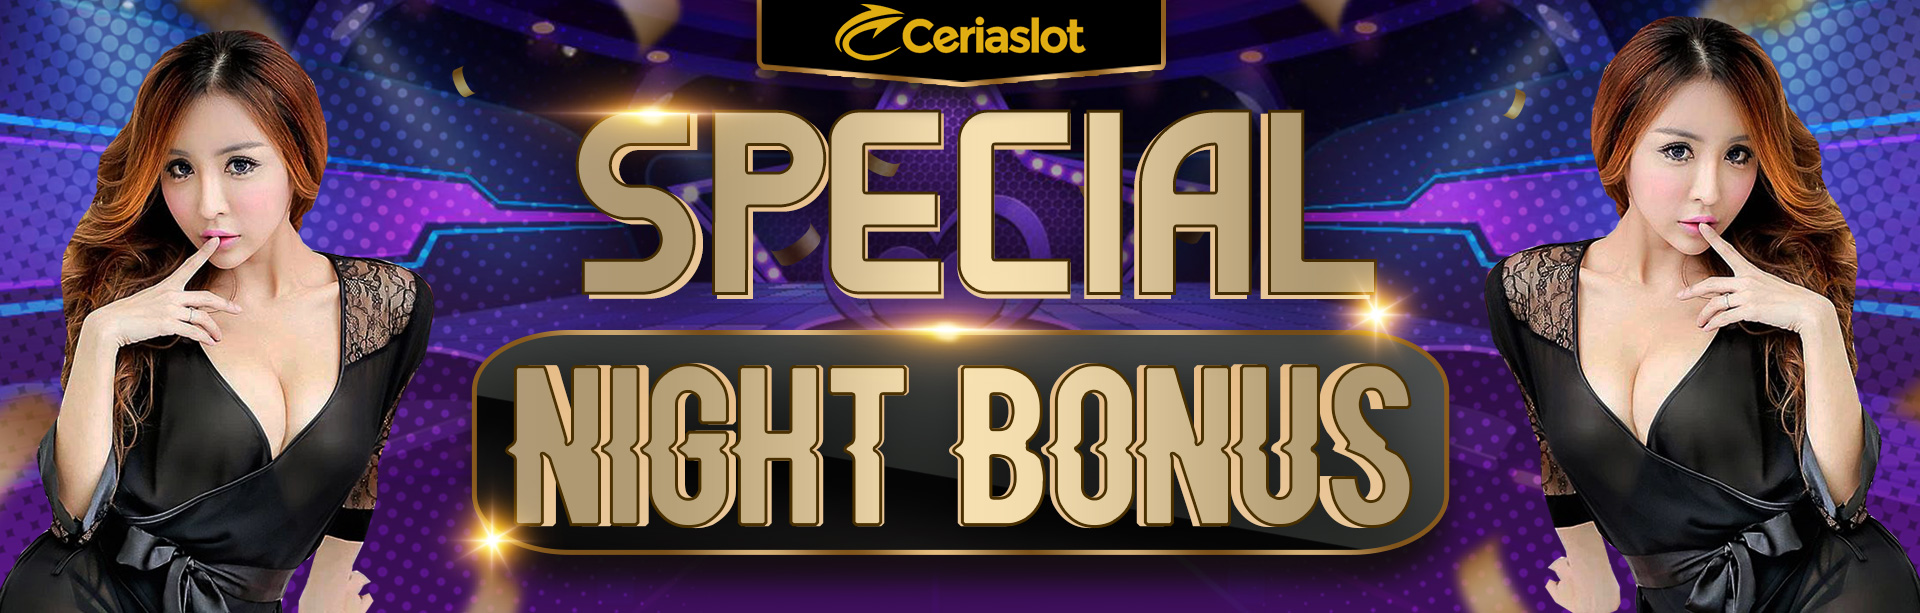 Special Night Bonus - CERIASLOT